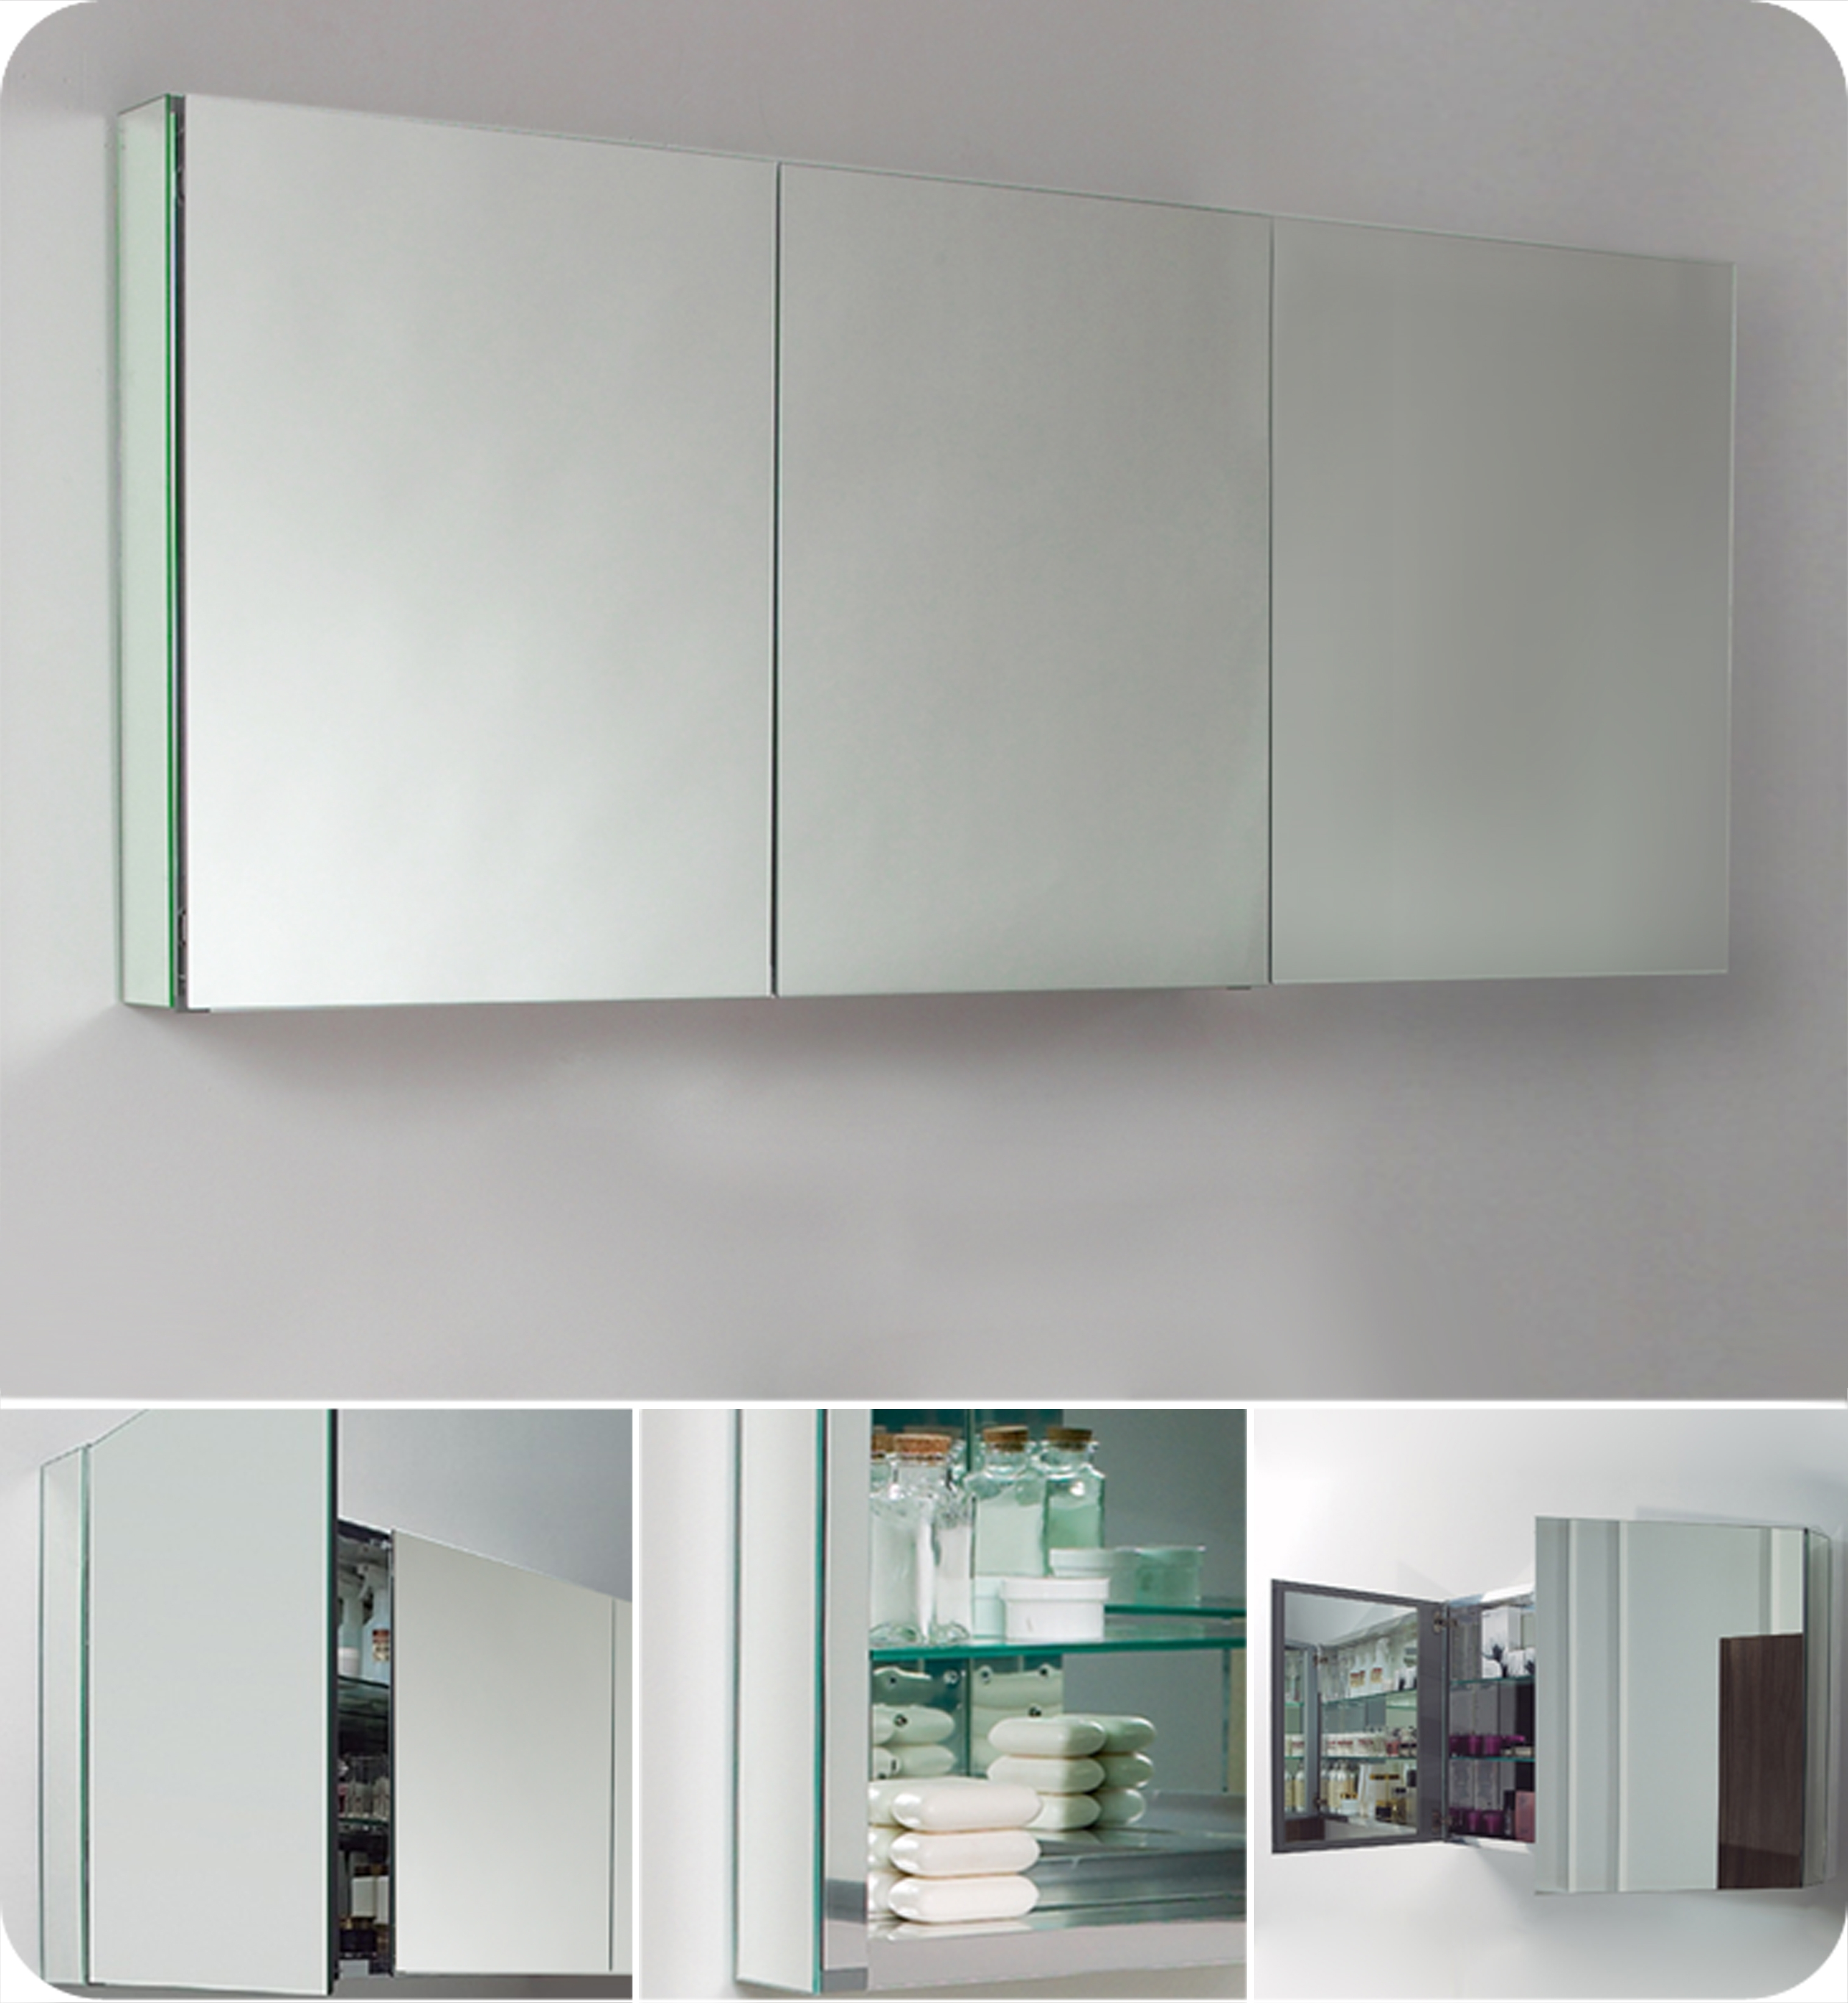 Bathroom Cabinets With 3 Mirrored Doors